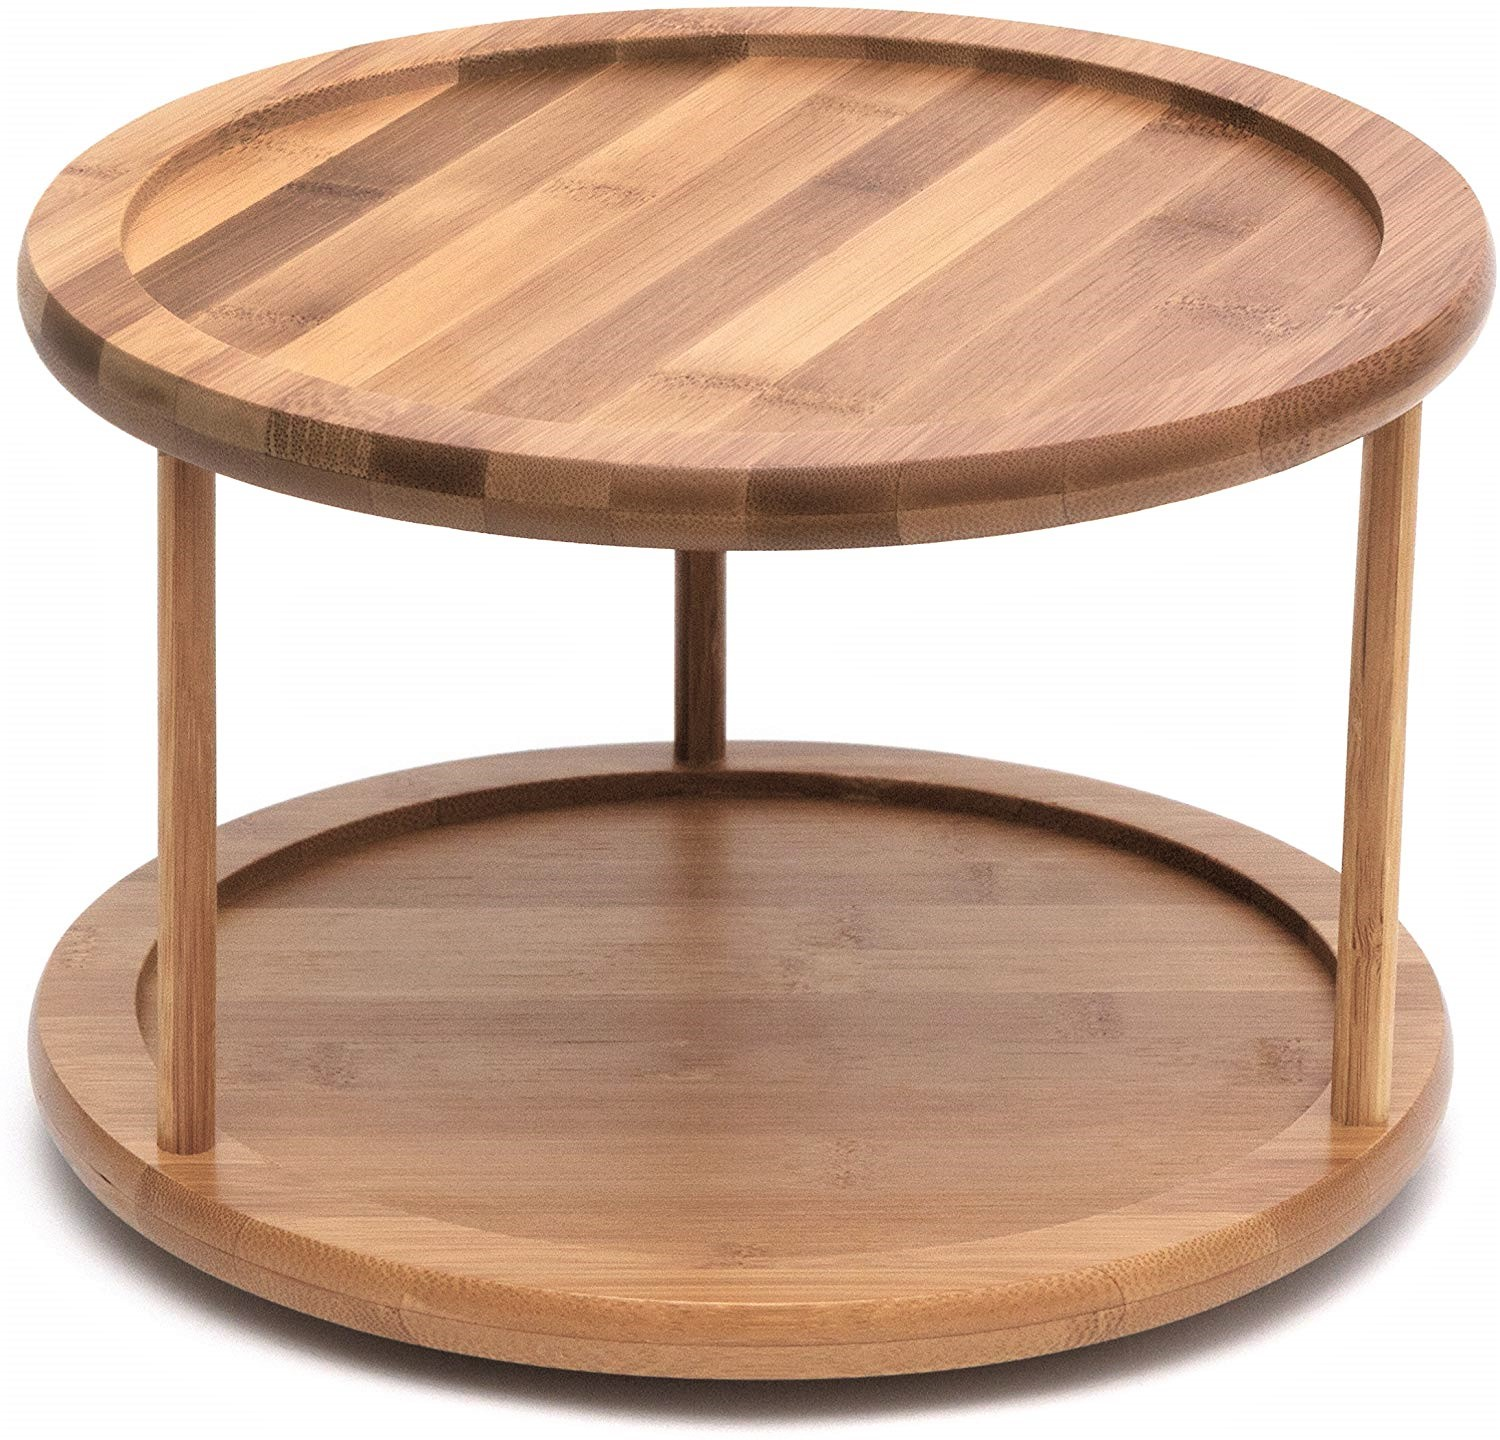 Bamboo Turntable 2 Tier